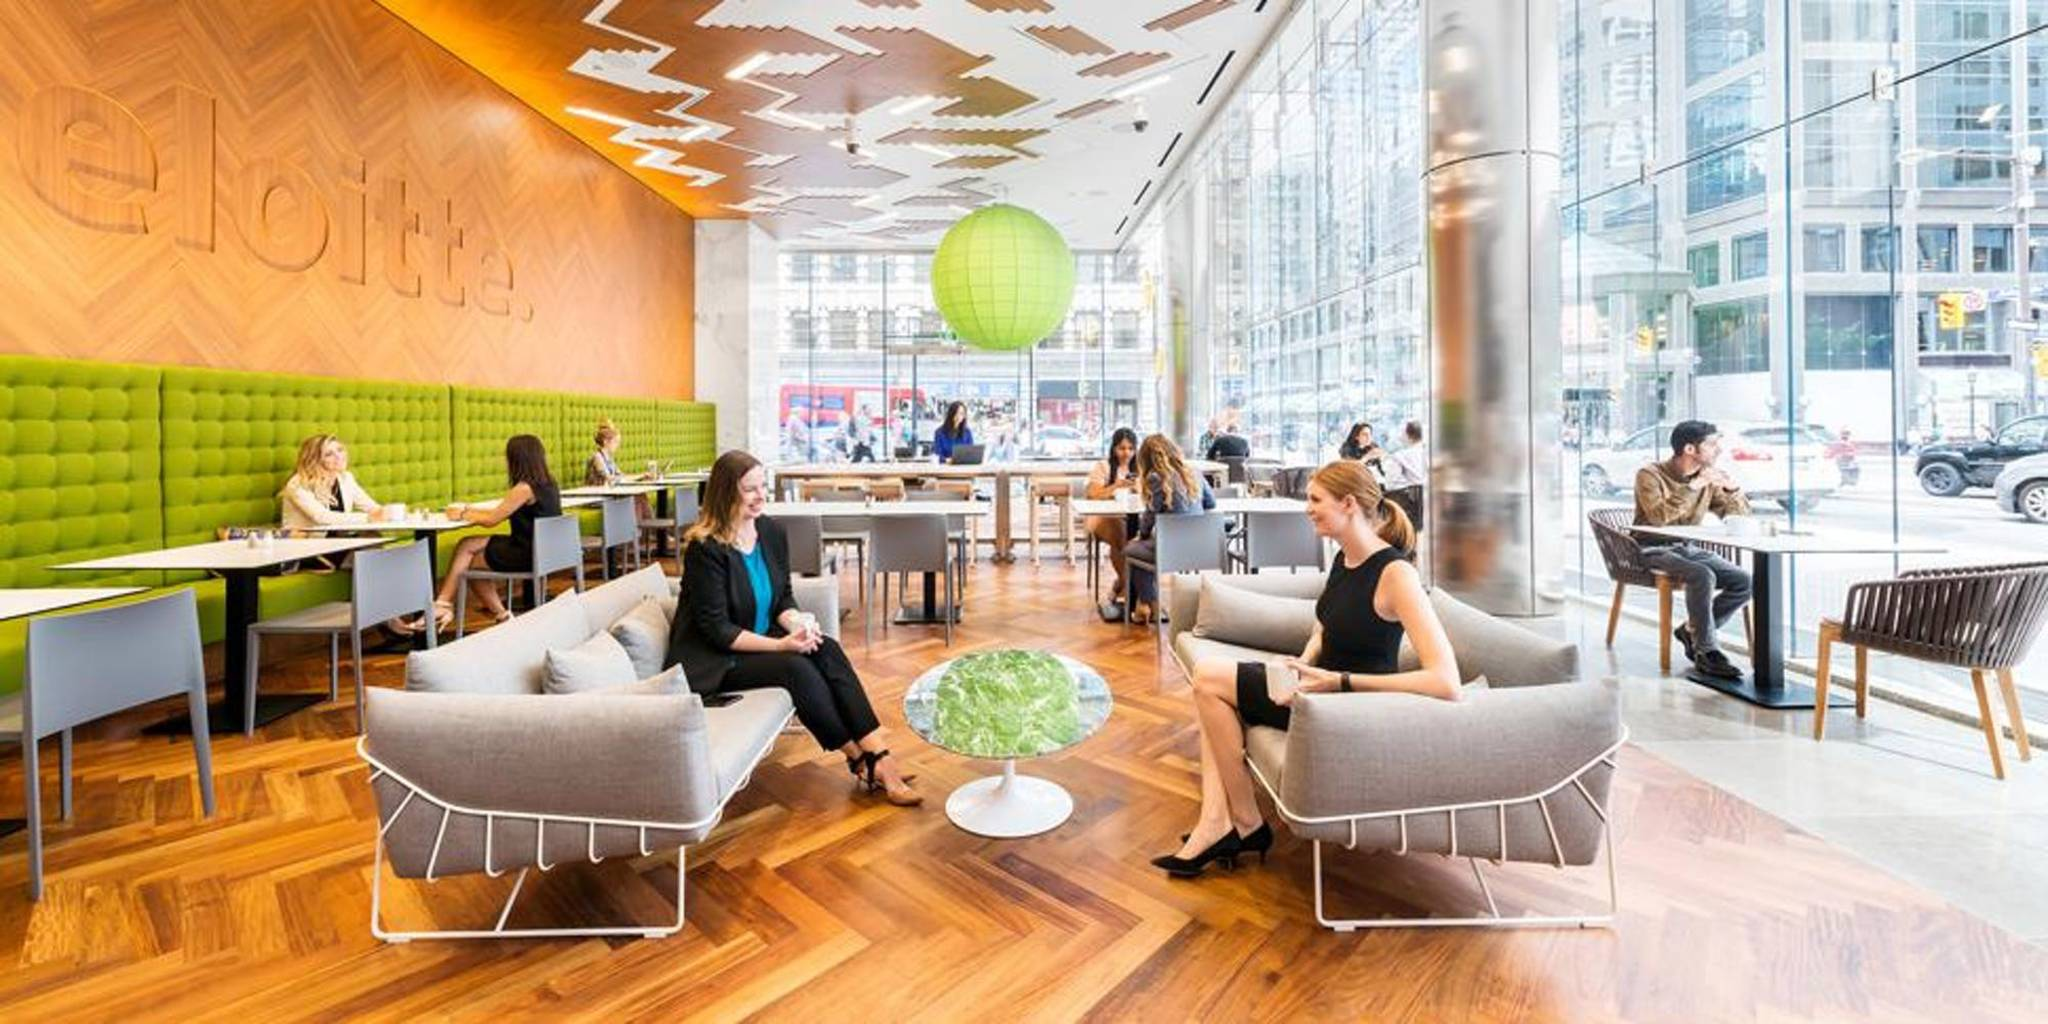 This image is a photograph of the inside of the Deloitte building in a cafe style room and includes people sitting down some of whom are socializing.